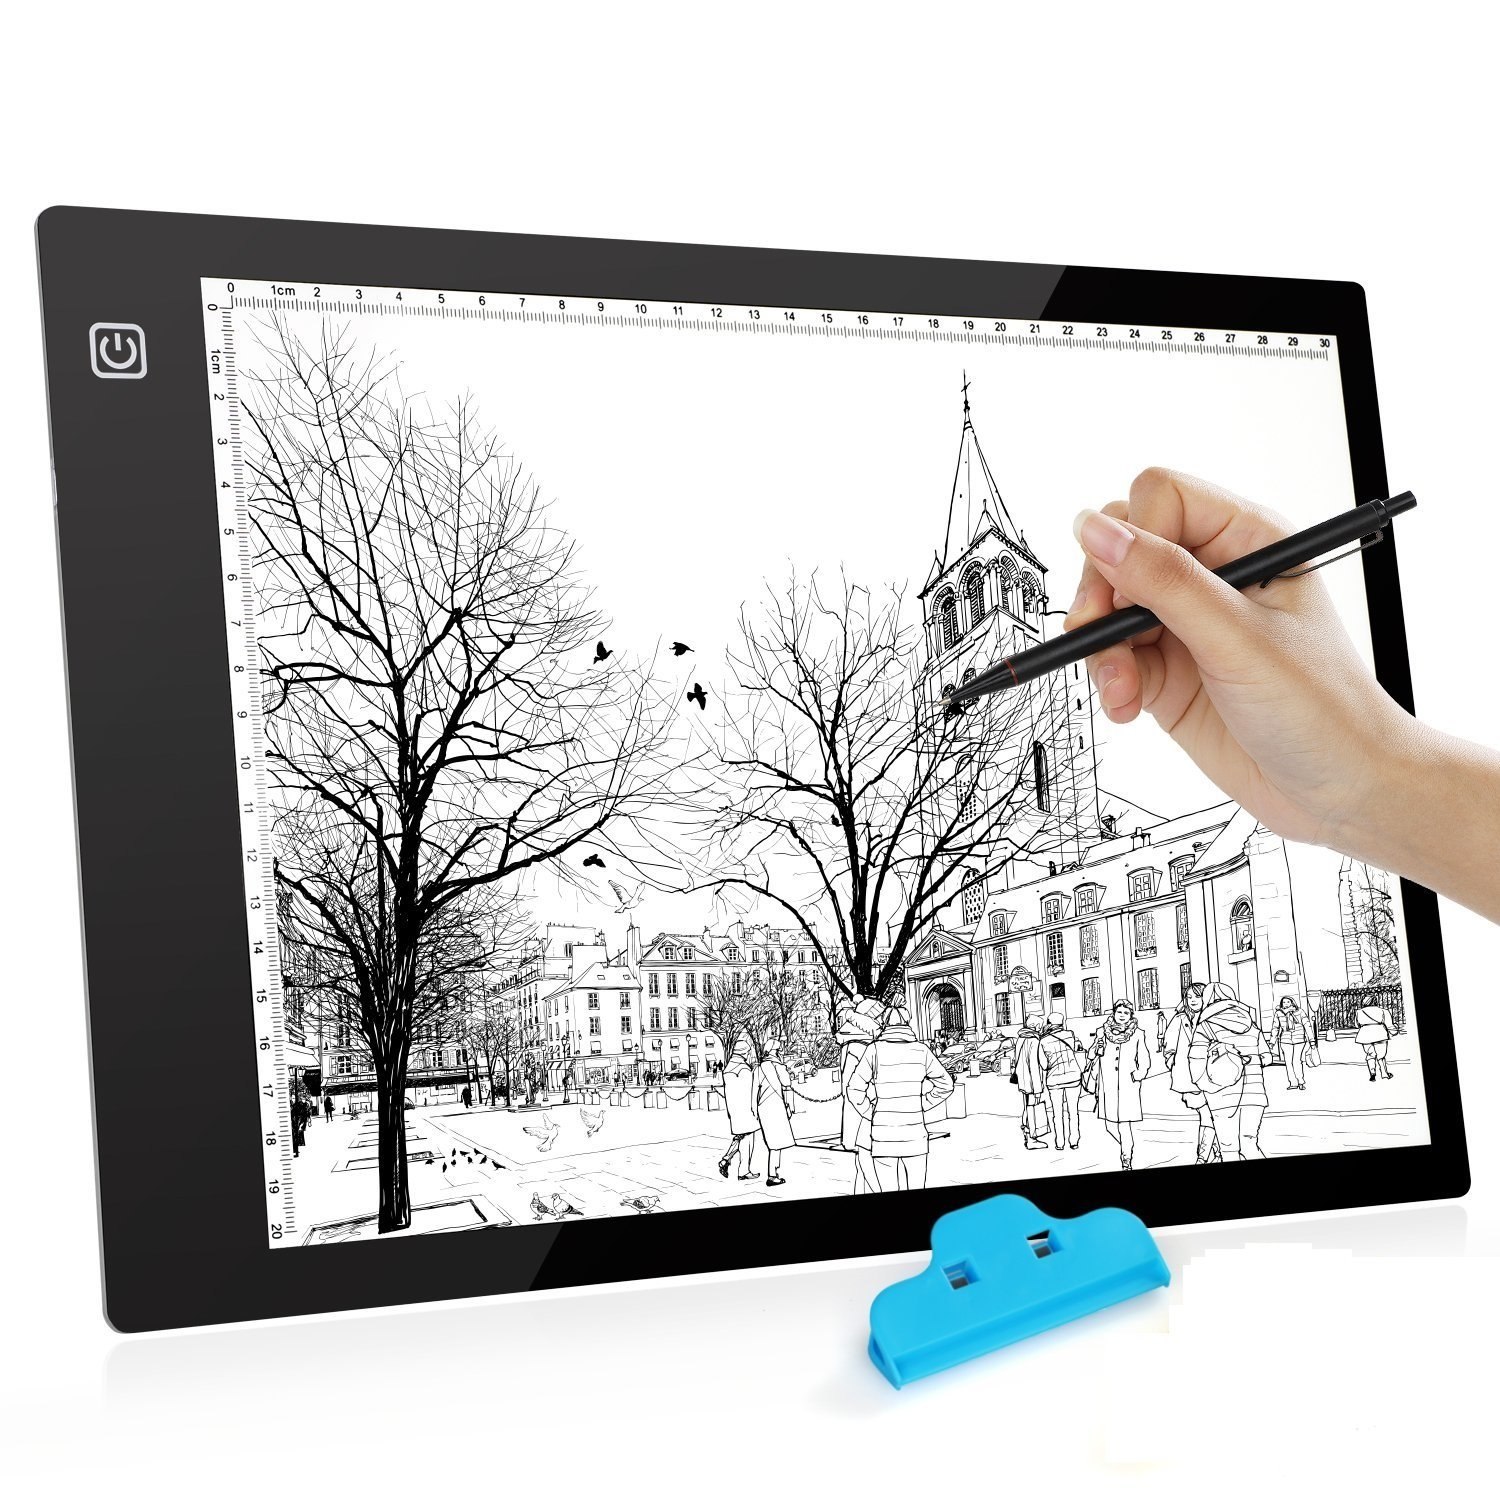 A4 Tracing Light Box Drawing Box,Usb Drawing Board,Led Artcraft Tracing Light Pad,With Brightness Adjustable,For Artists Drawing, Sketching, Animation (A4 New Version) by Amazon